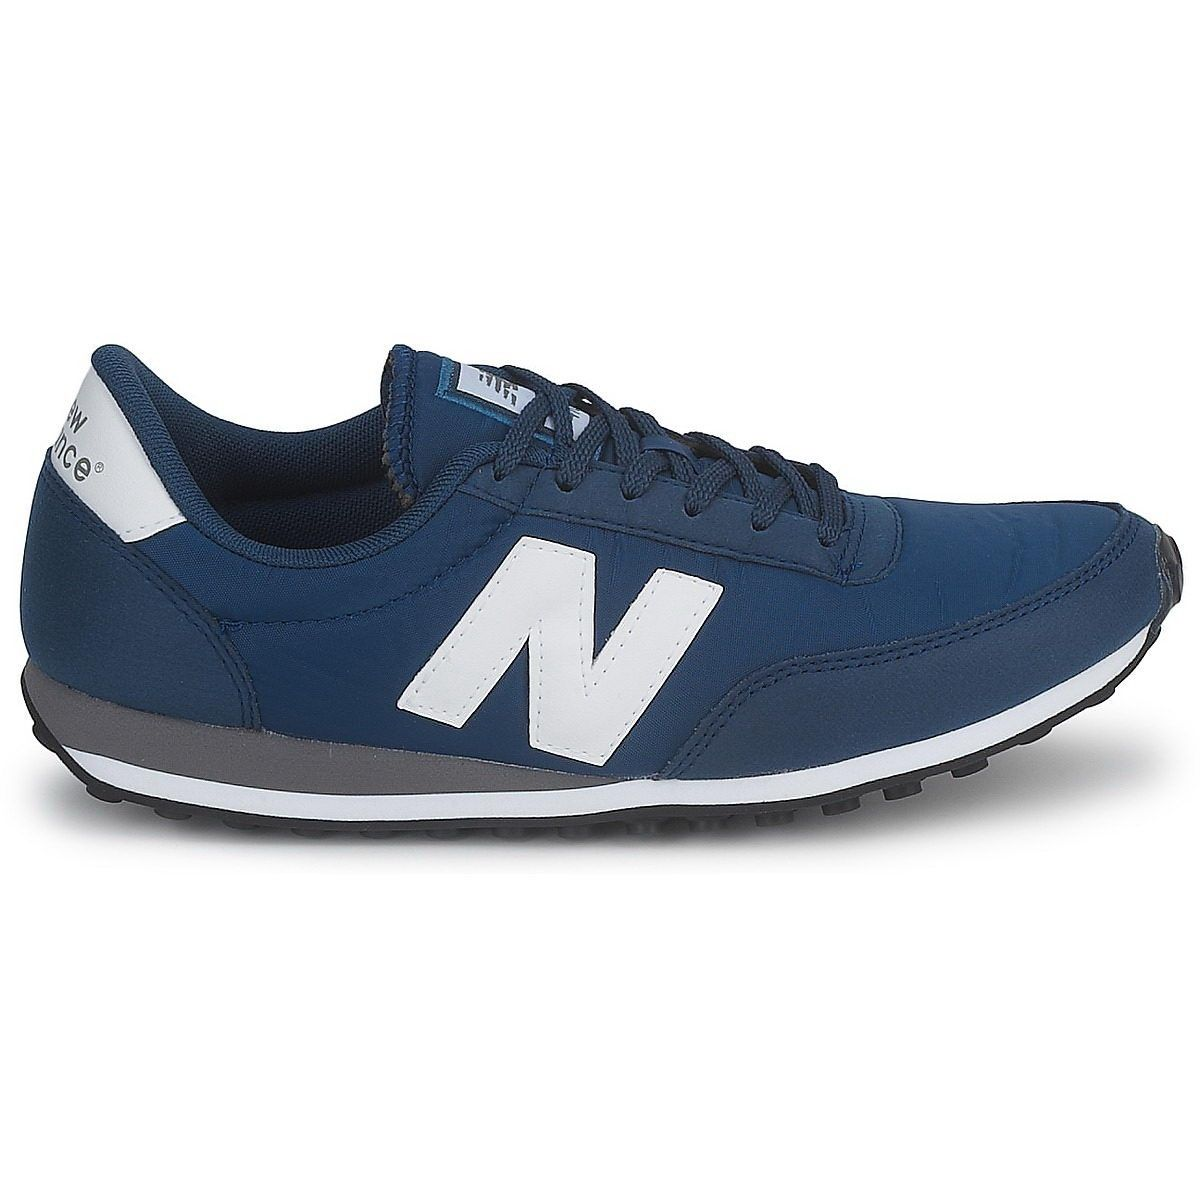 Shoes Outlet - New Balance 410 Navy Mens Trainers